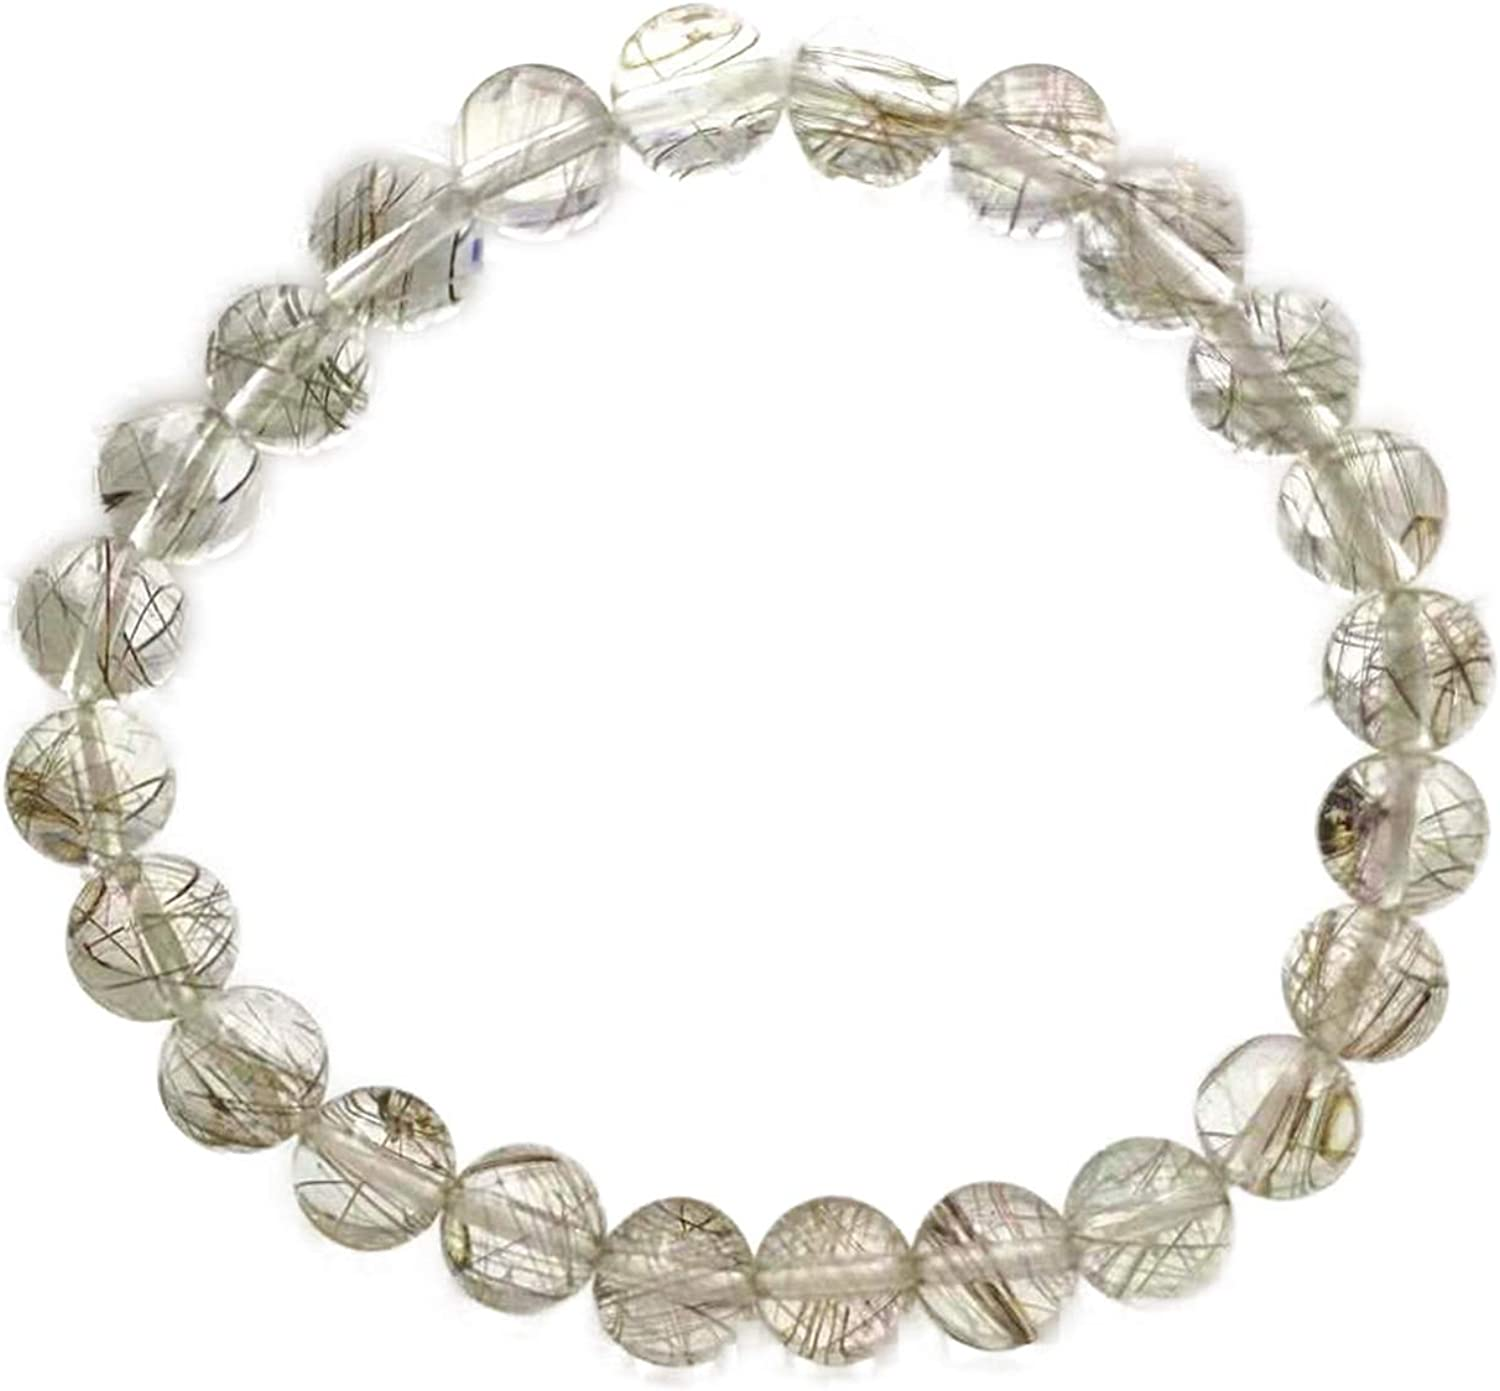 Genuine Natural Silver A Dedication surprise price is realized Rutilated Quartz 8mm Stretc Crystal Clear